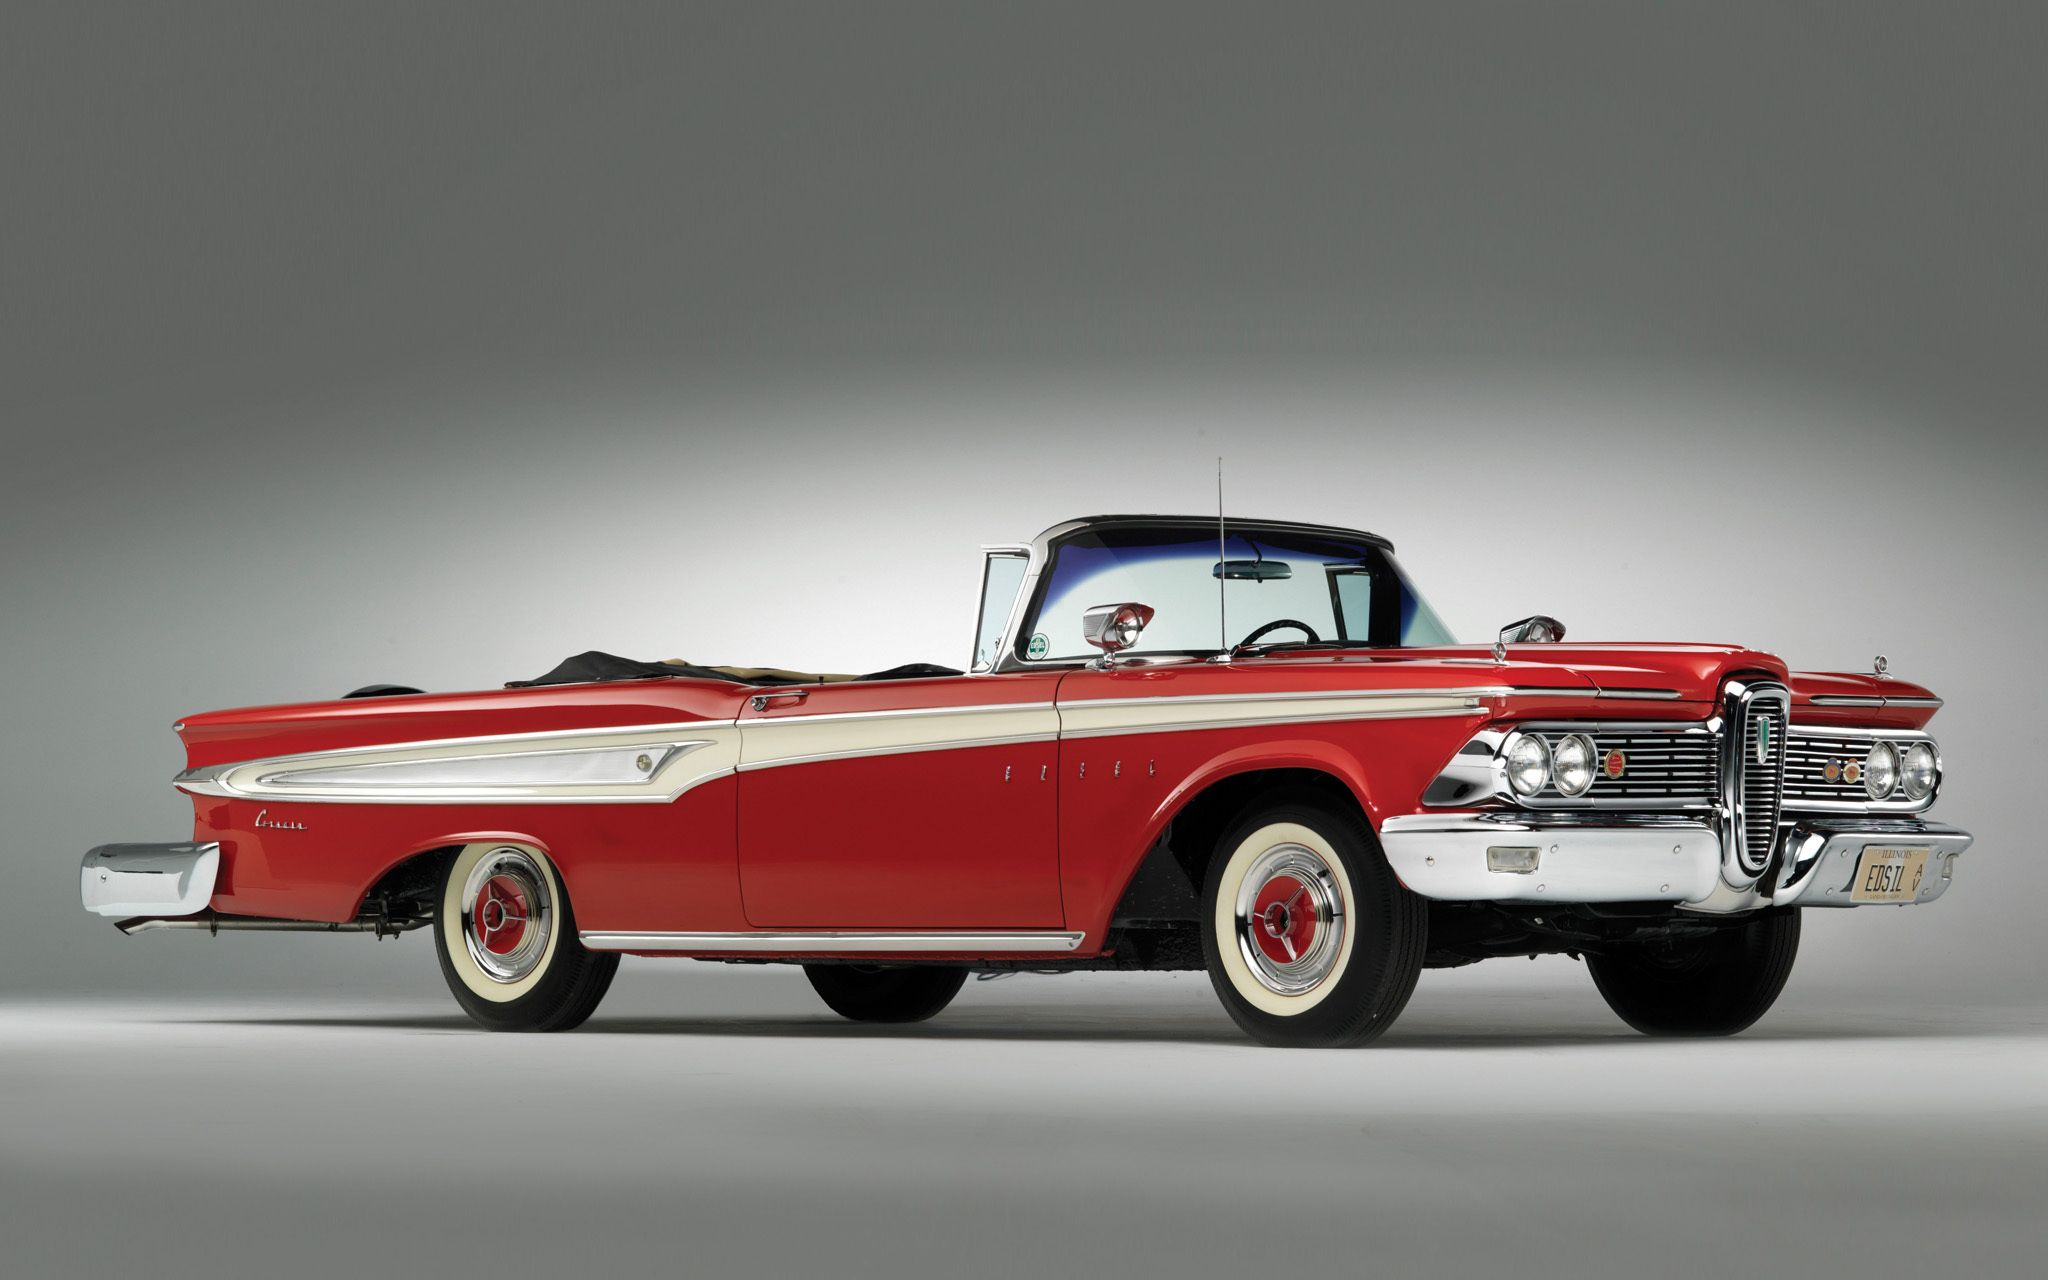 But Convertible Edsel Corsair Convertible 1959 Not Much A Fan Of American Cars